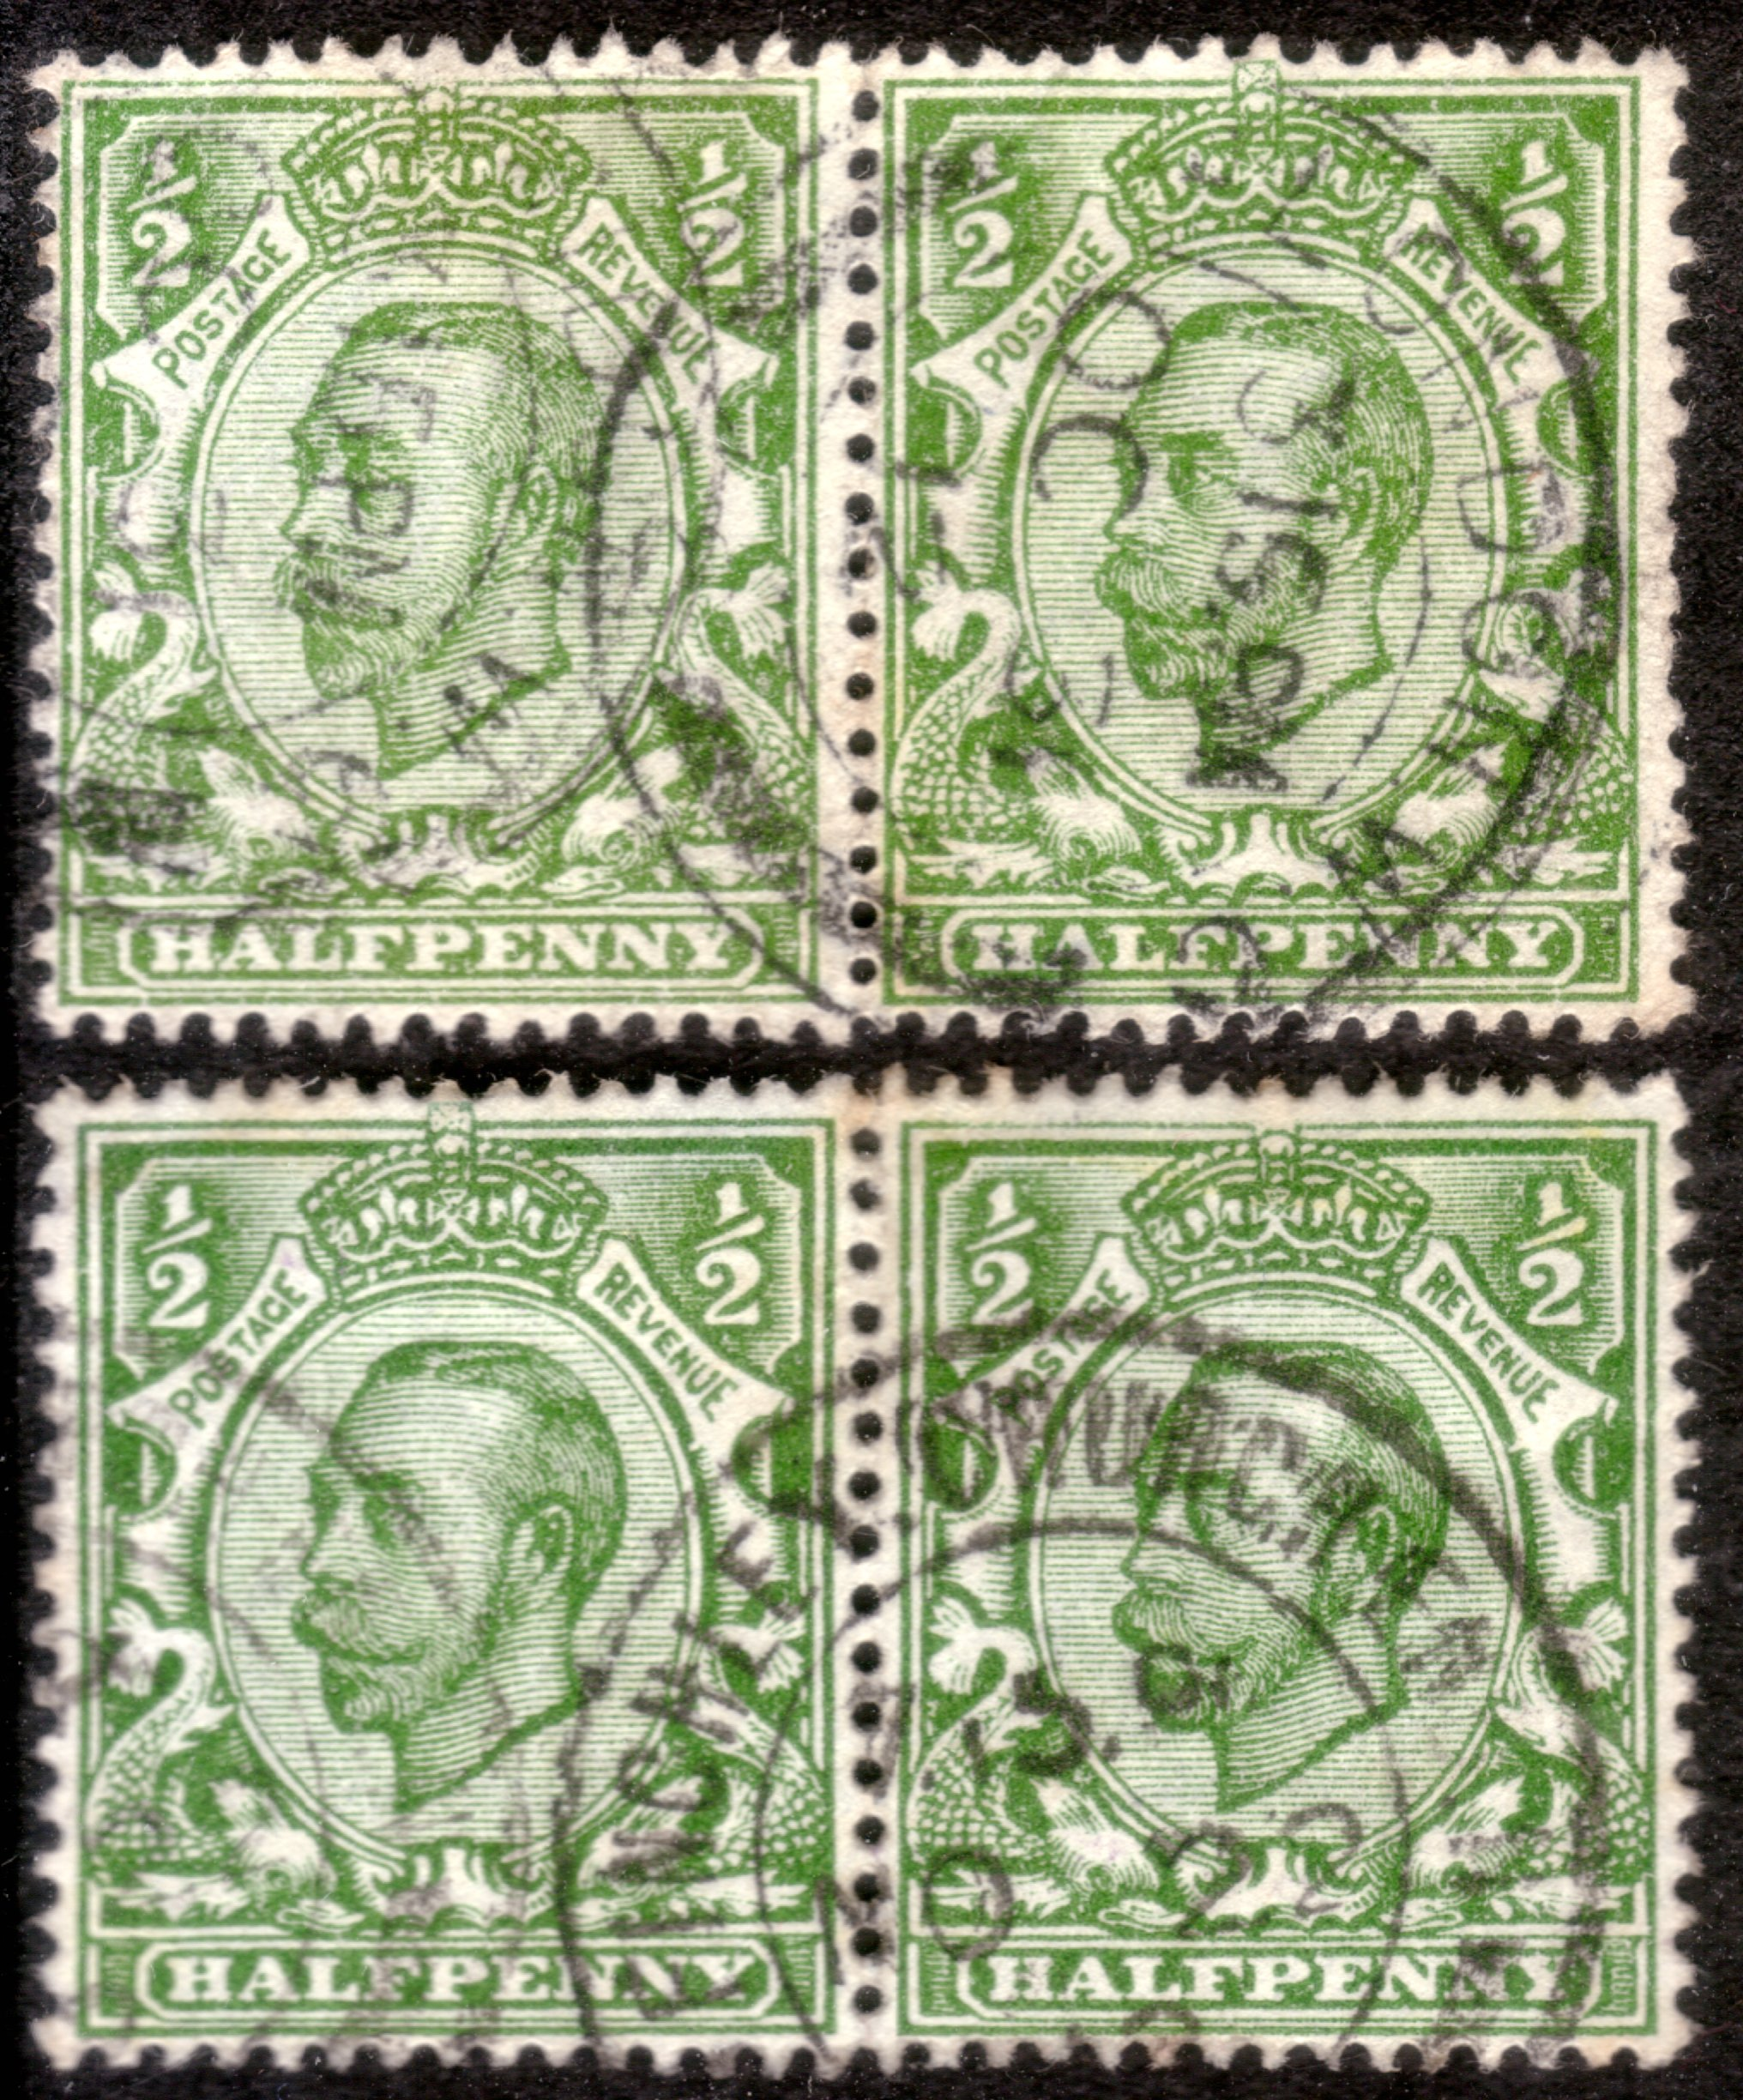 1912 ½d Green Shades No Cross on Crown Varieties in Two Pairs